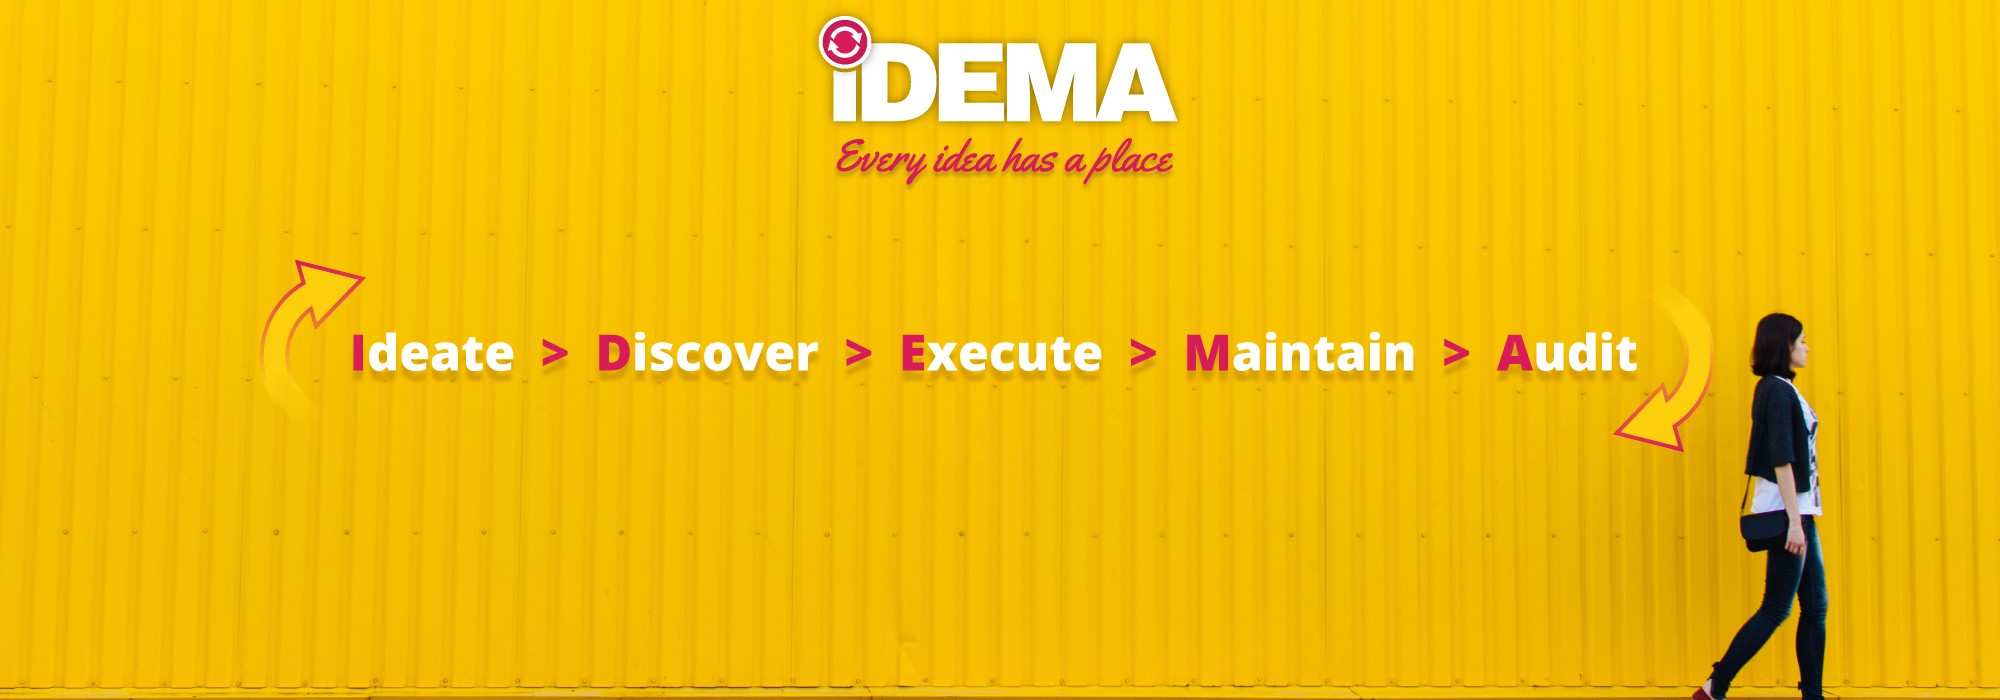 IDEMA. A Framework For Capturing & Sustaining Ideas.